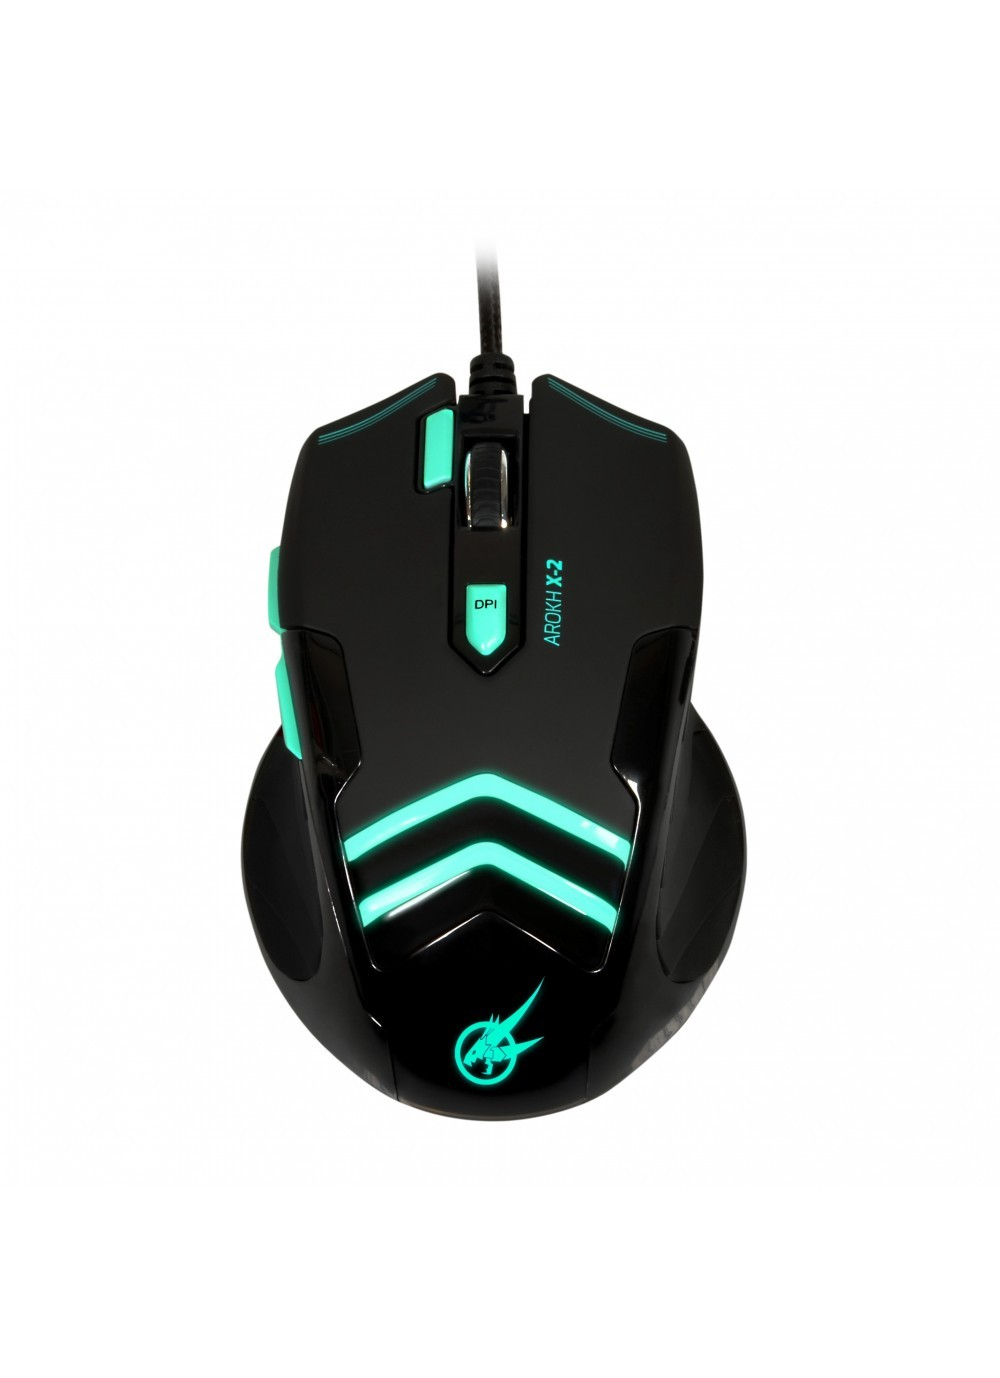 GAMING MOUSE AROKH X-2 - 7 BUTTONS 3500 DPI - GN